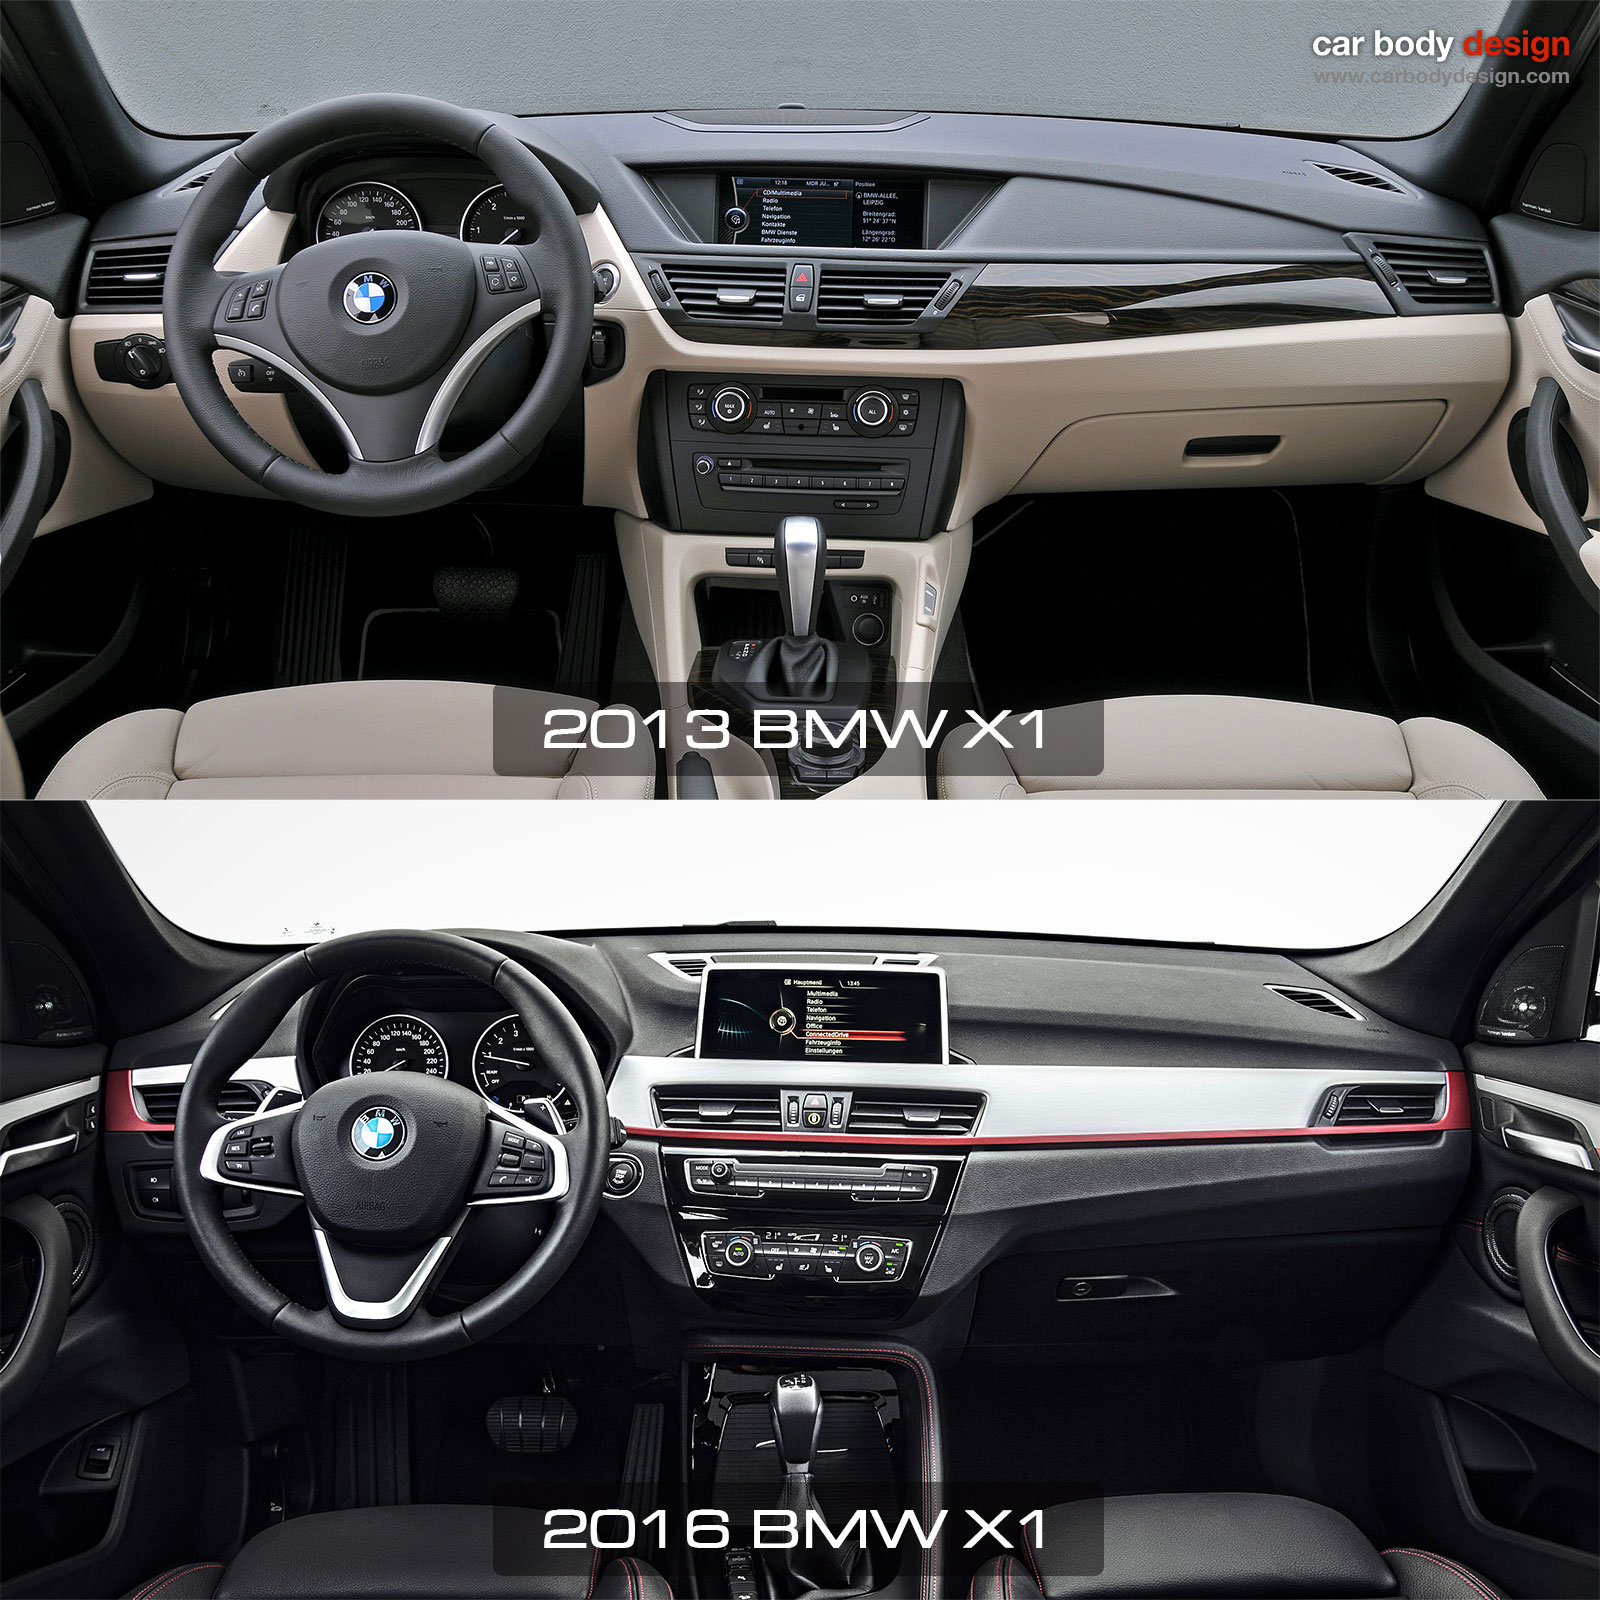 1st Vs 2nd Generation Bmw X1 Interior Design Comparison Car Body Design